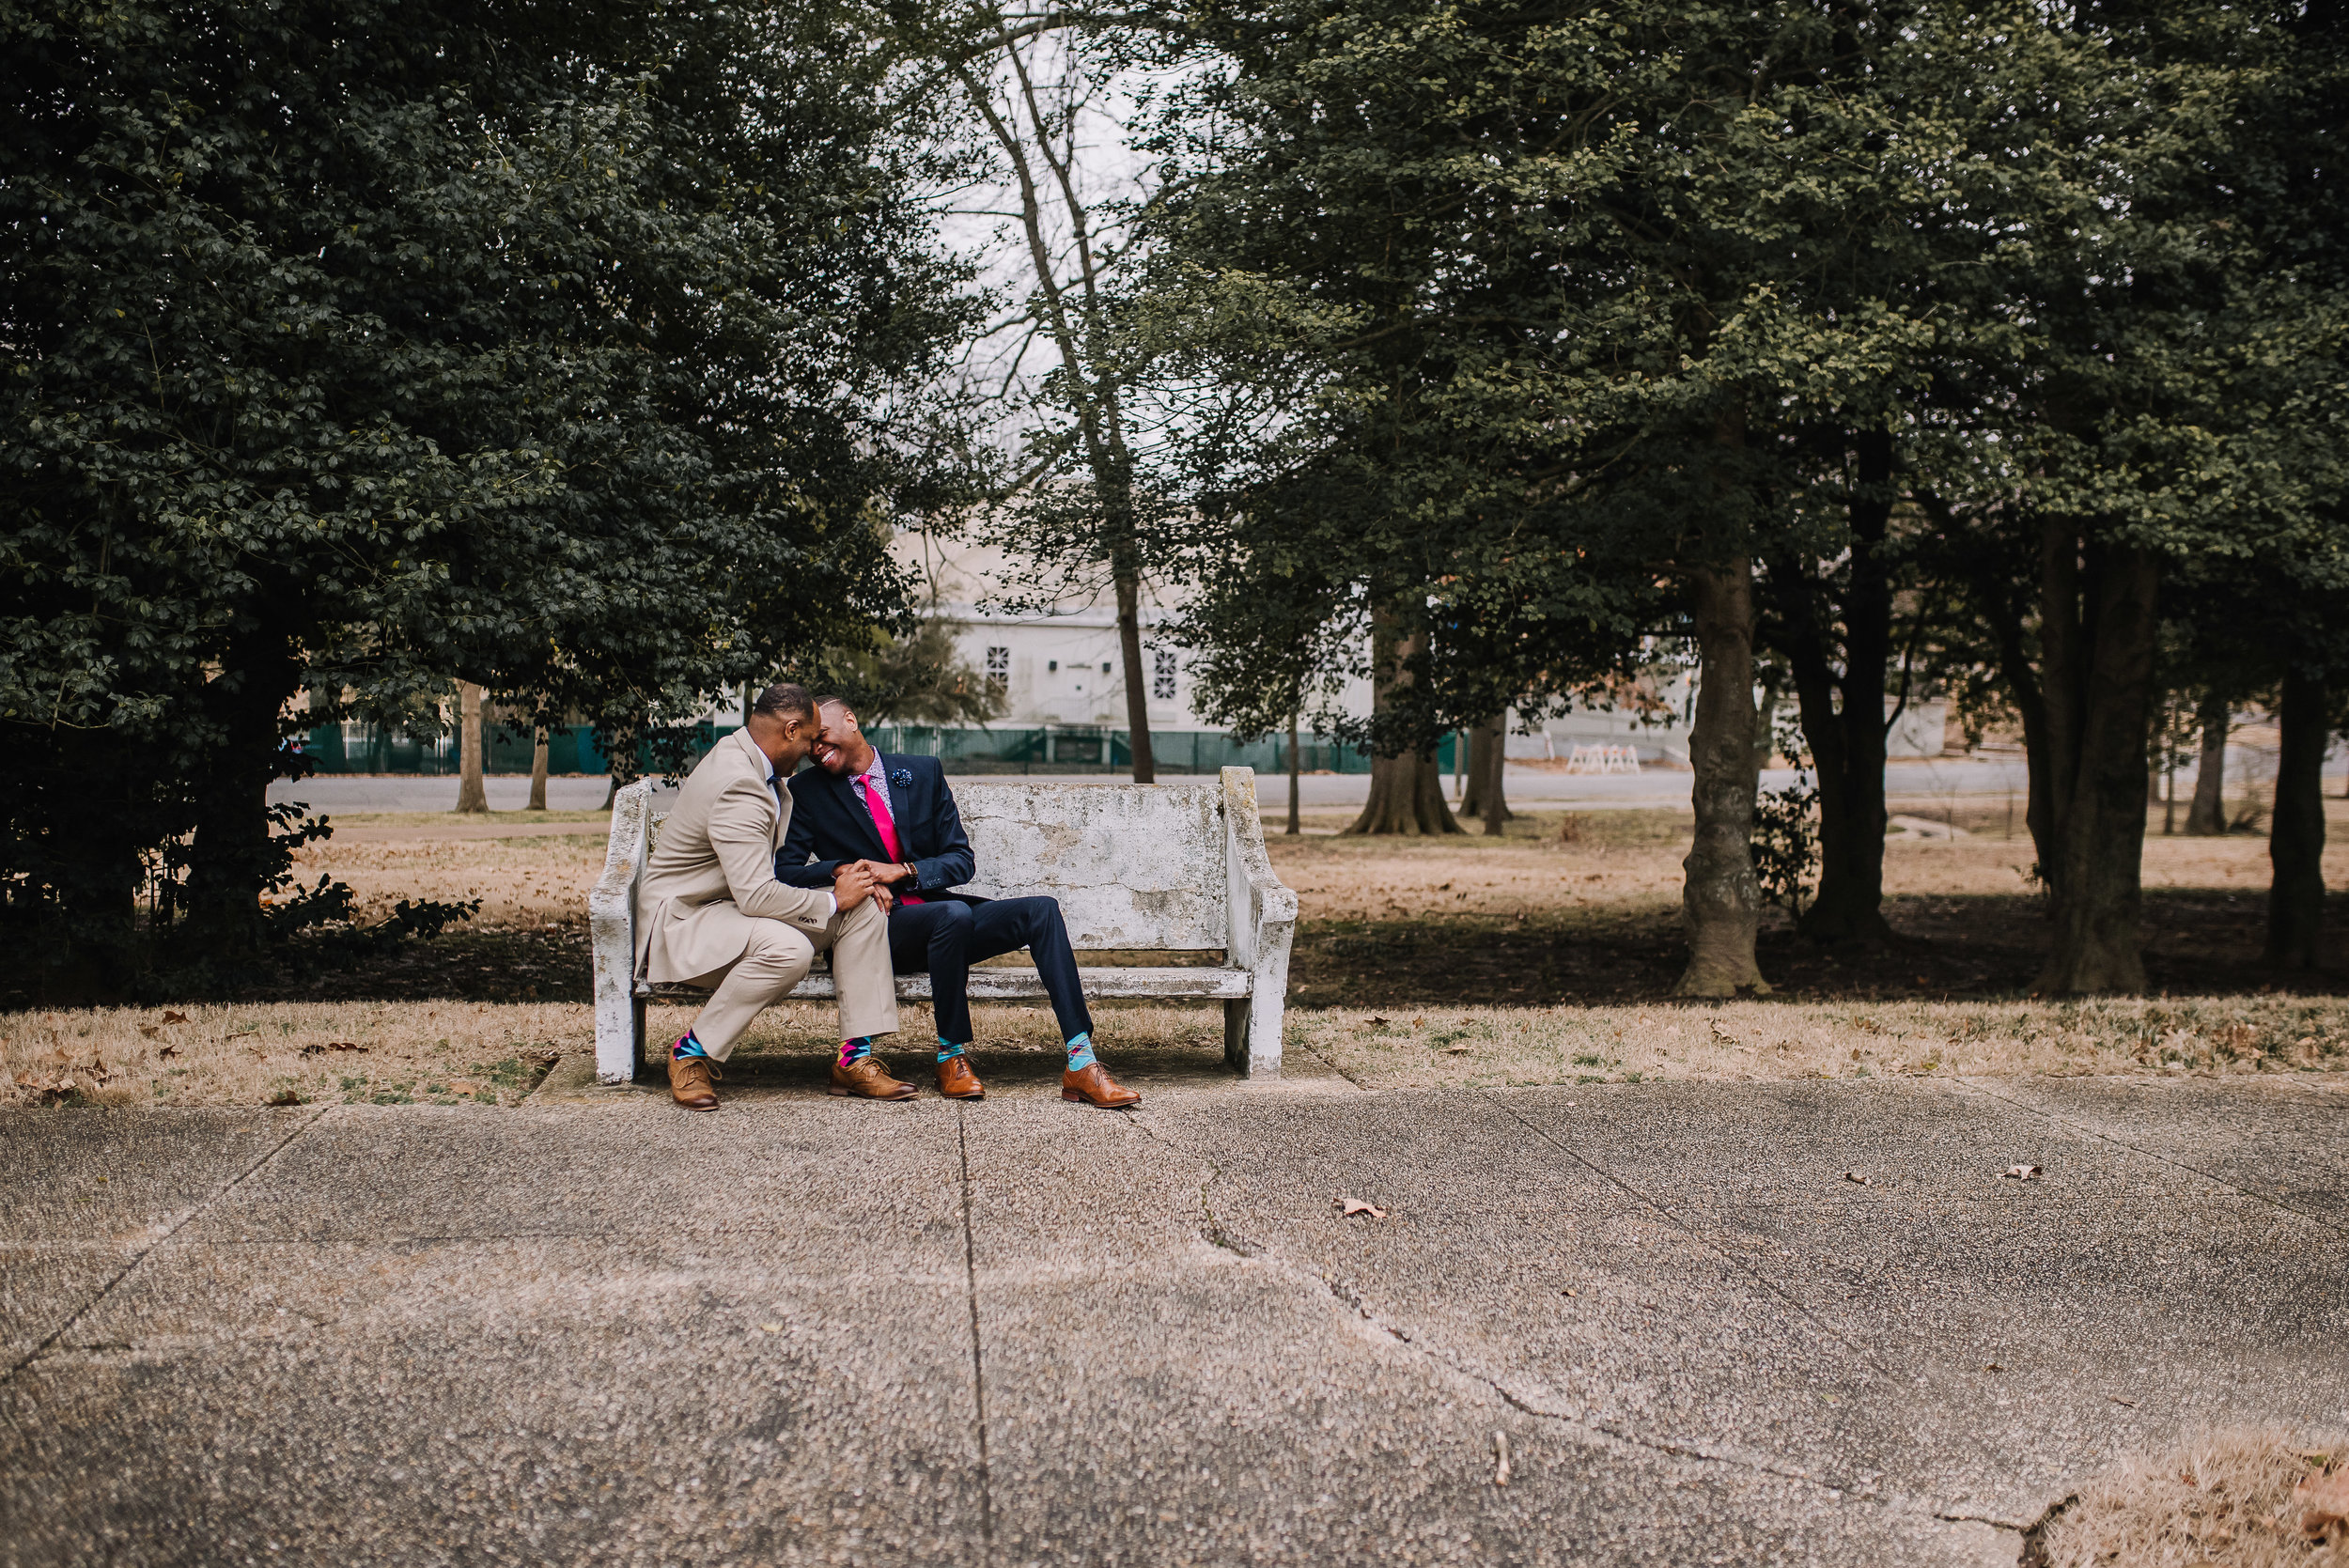 L+J_Couples-Session_Overton-Park_Downtown-Memphis_Ashley-Benham-Photography-23.jpg